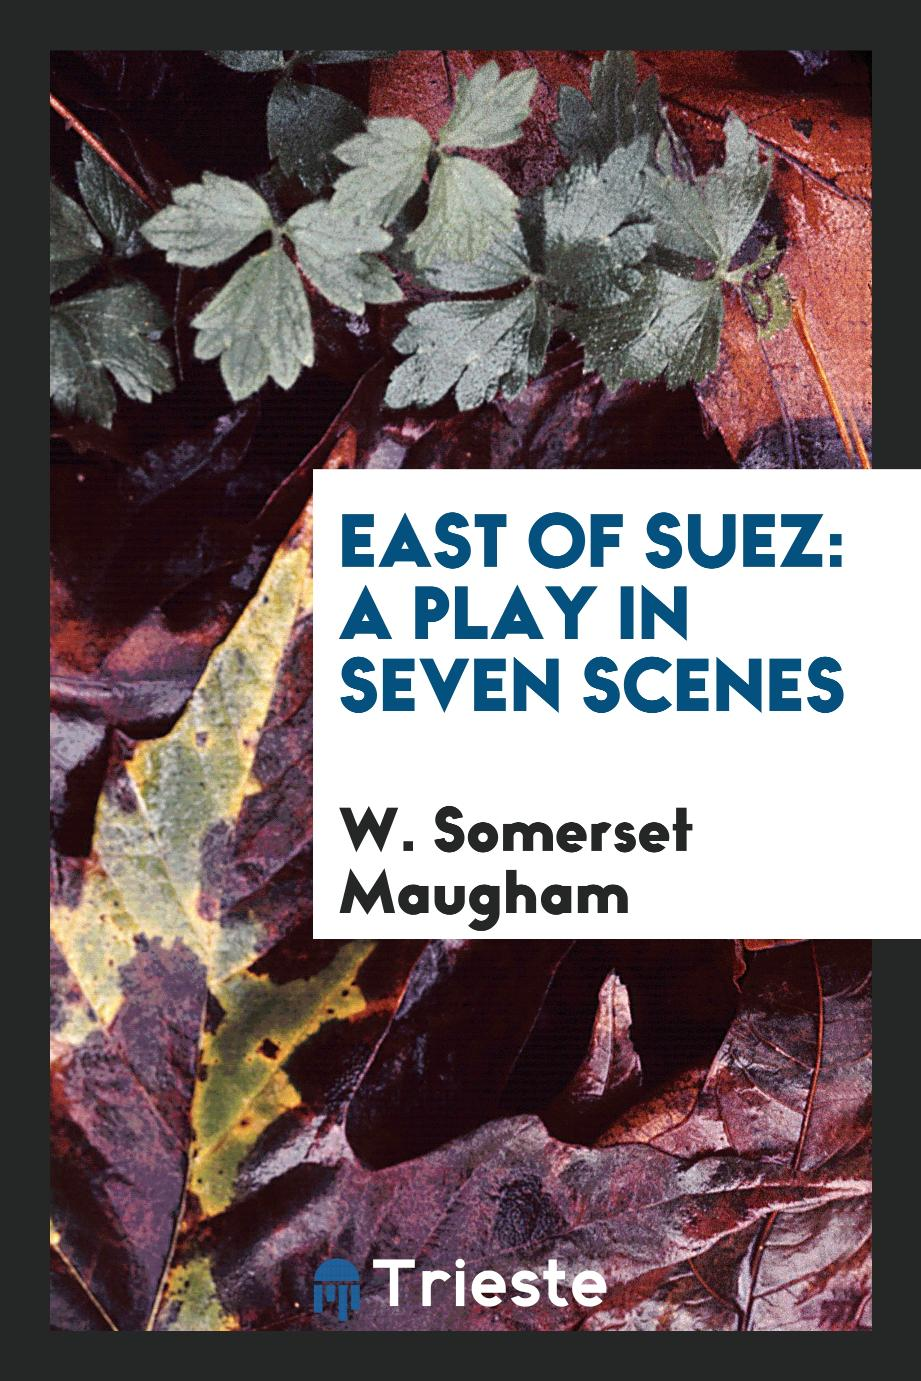 East of Suez: A Play in Seven Scenes